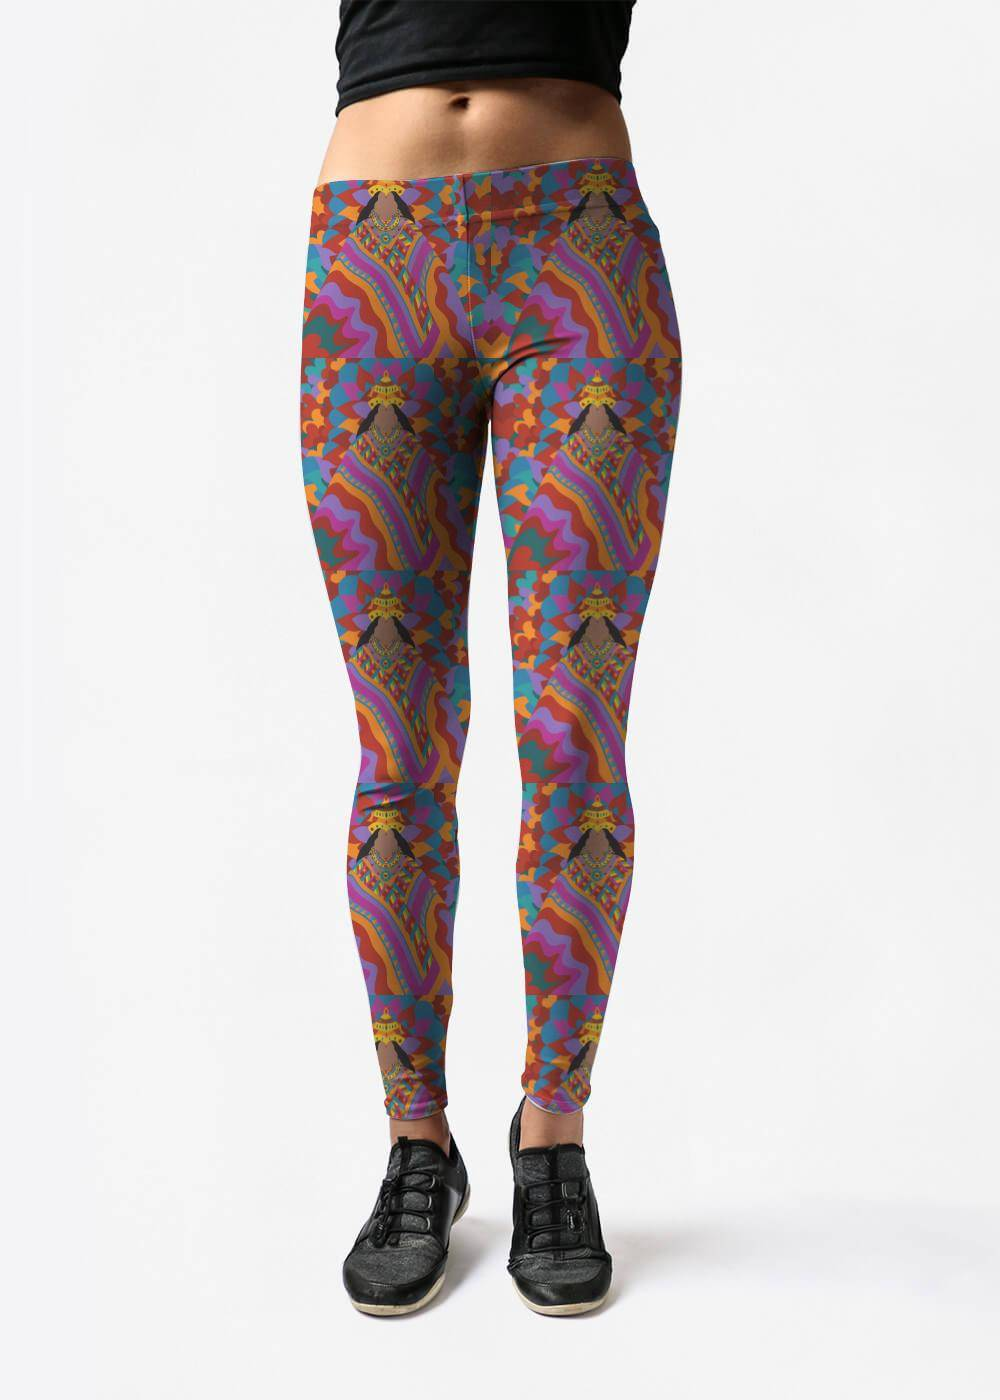 Synthia Saint James Leggings - Devi Lakshmi Rangoli by Synthia Saint James Original Artist  - Size: Large